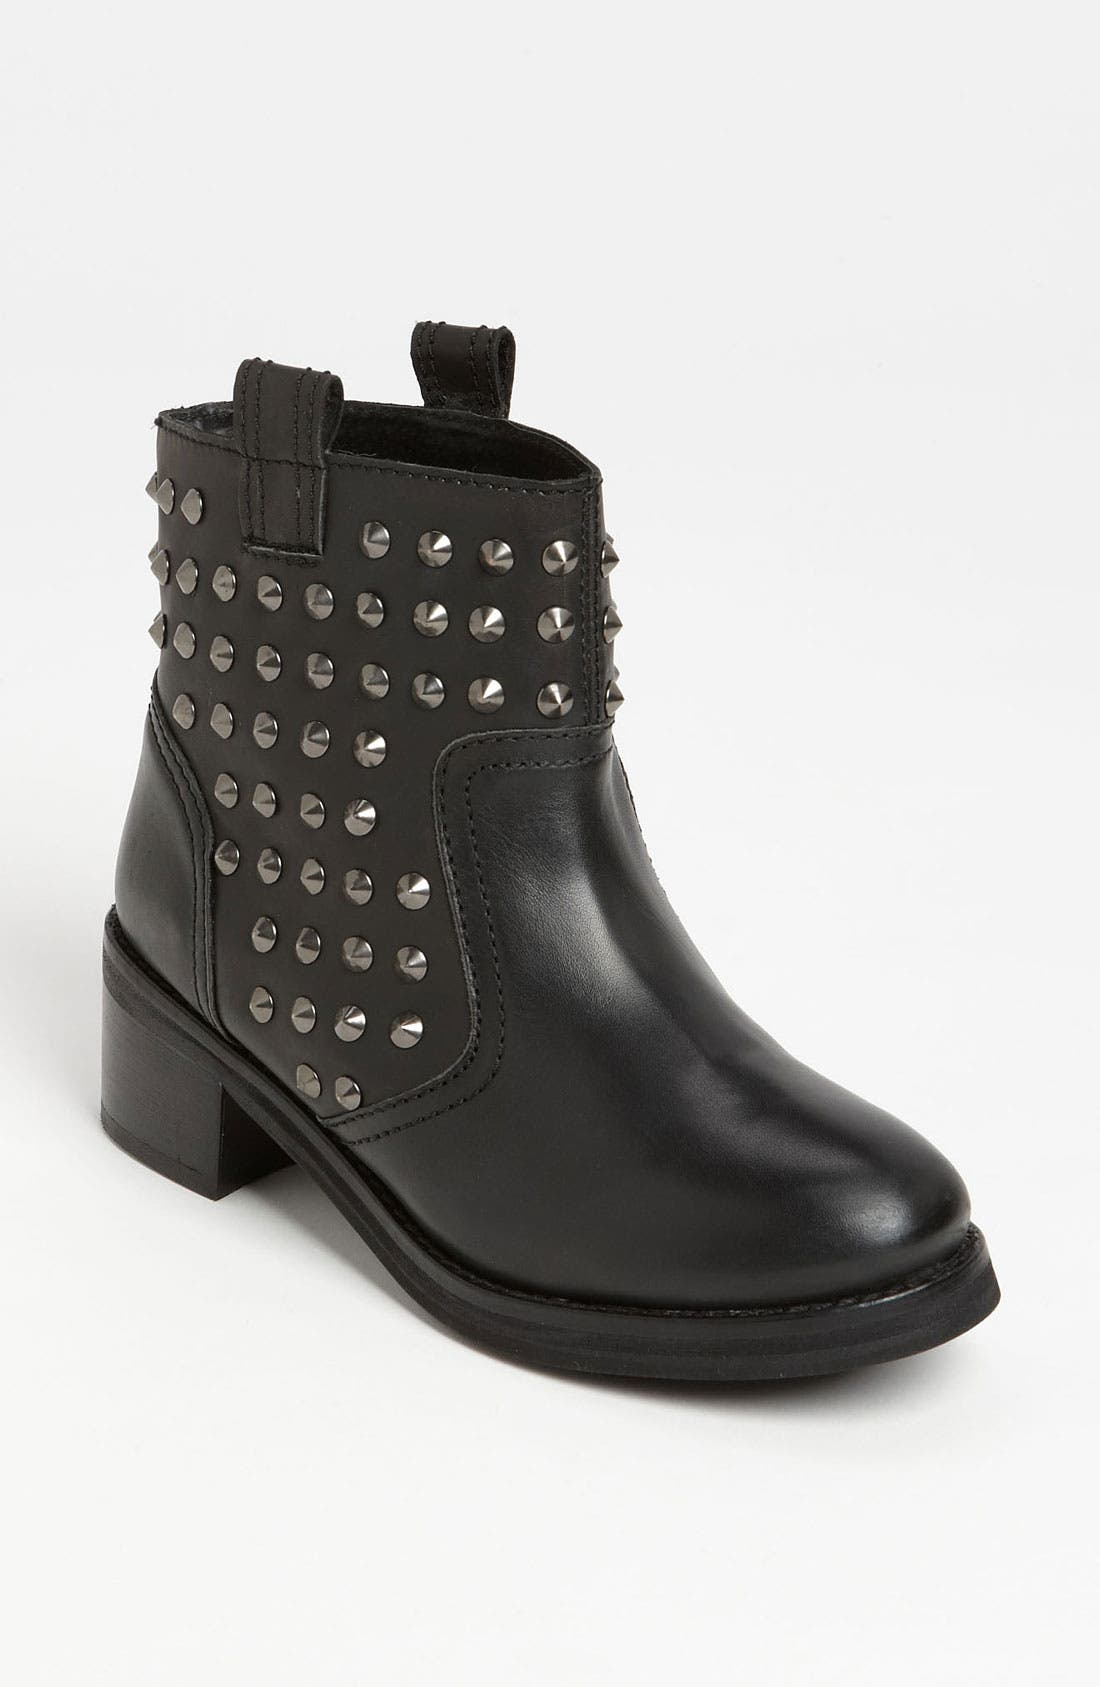 Alternate Image 1 Selected - Topshop 'Apocolypse' Boot